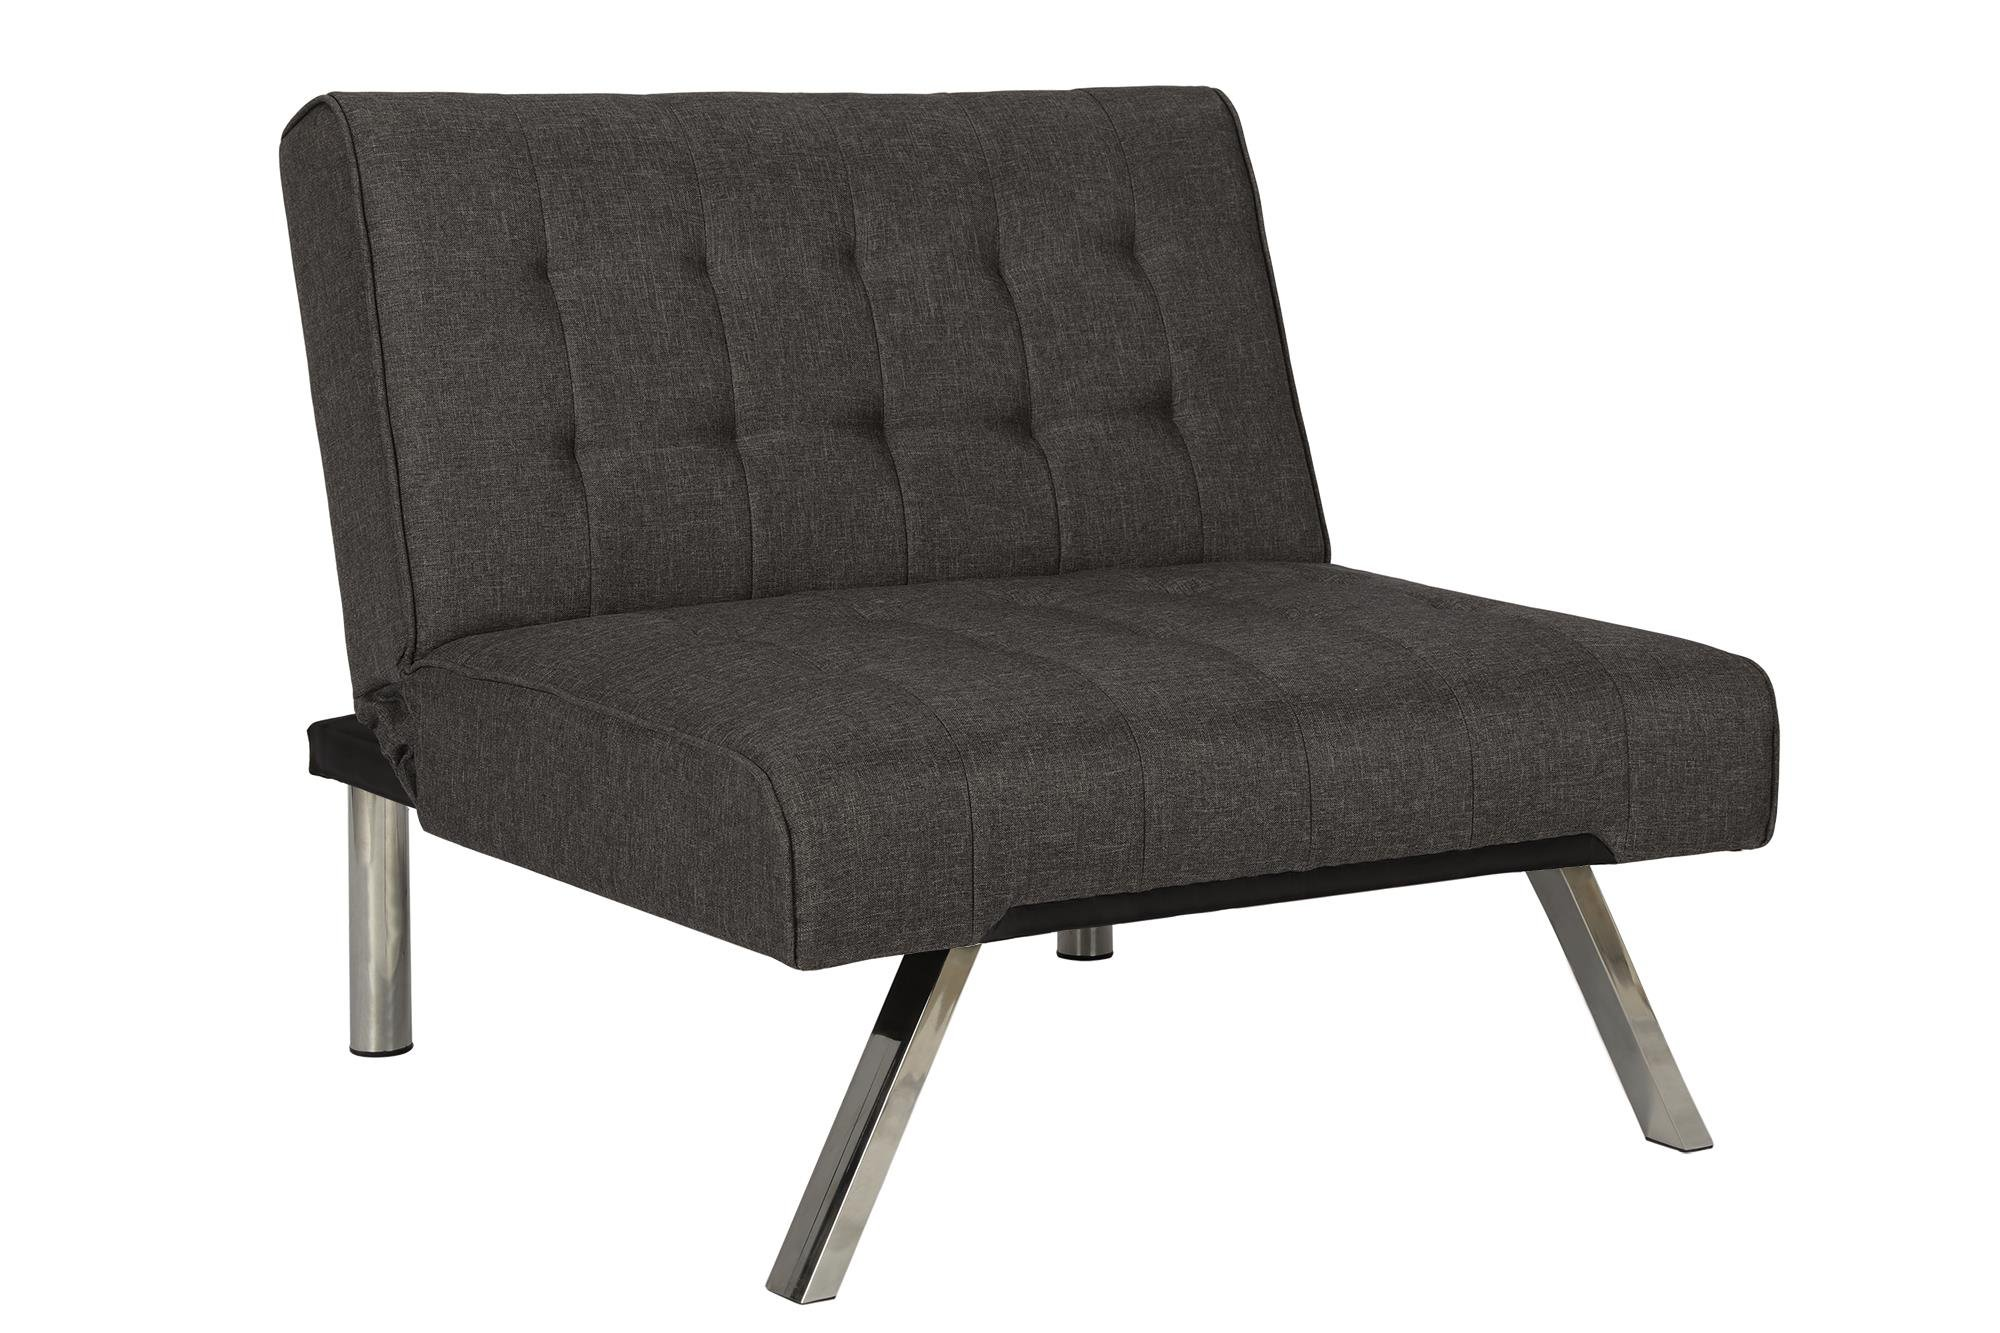 DHP Emily Accent Chair with Split-Back and Chrome Legs, Grey Linen by DHP